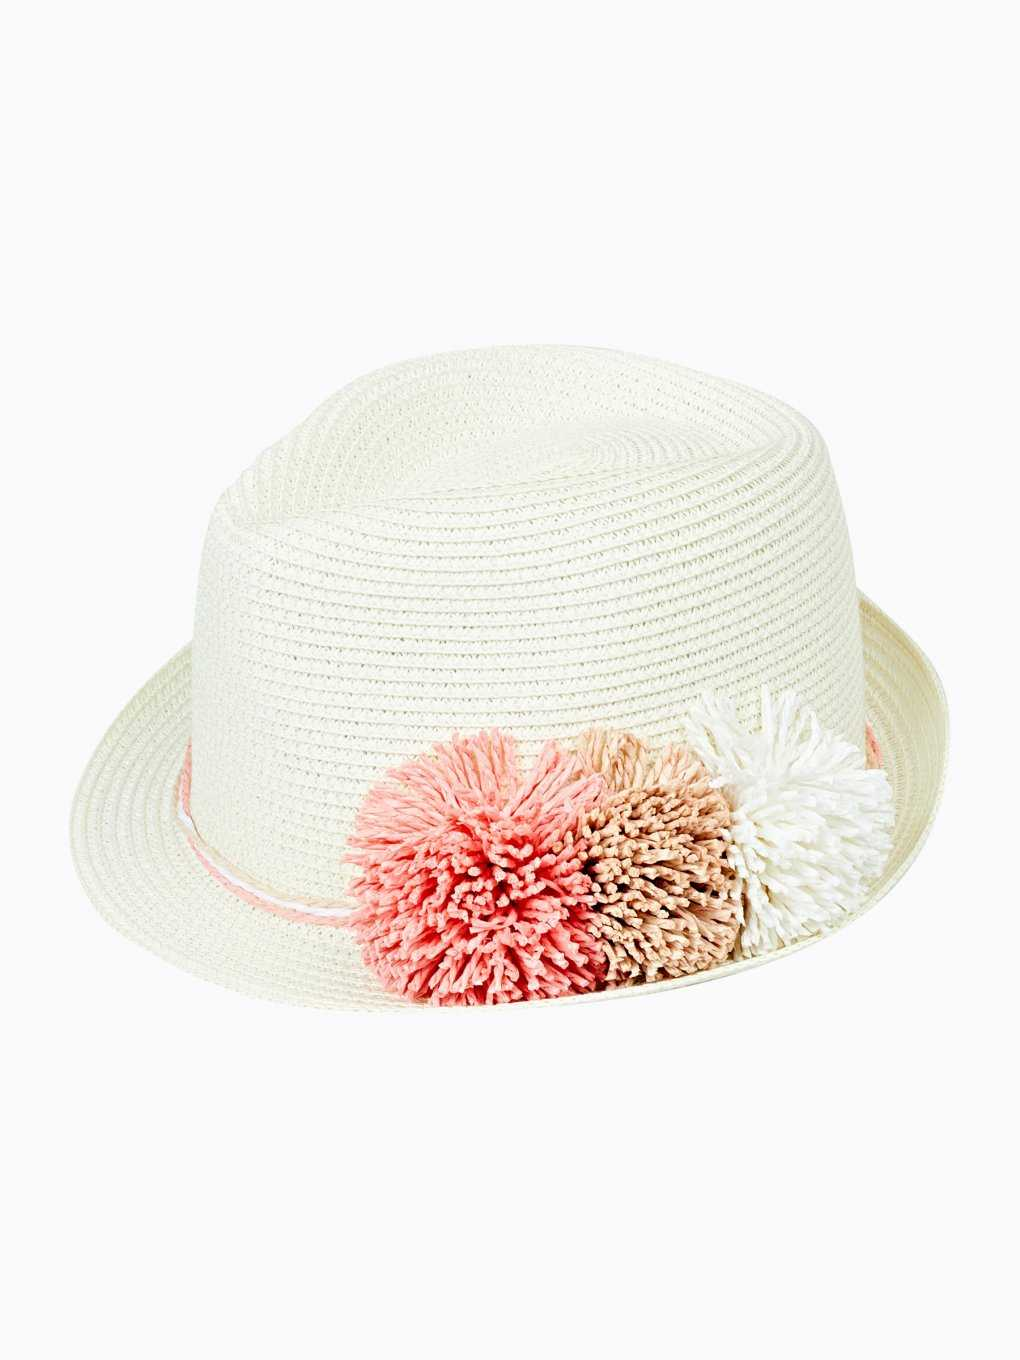 Fedora hat with pom poms